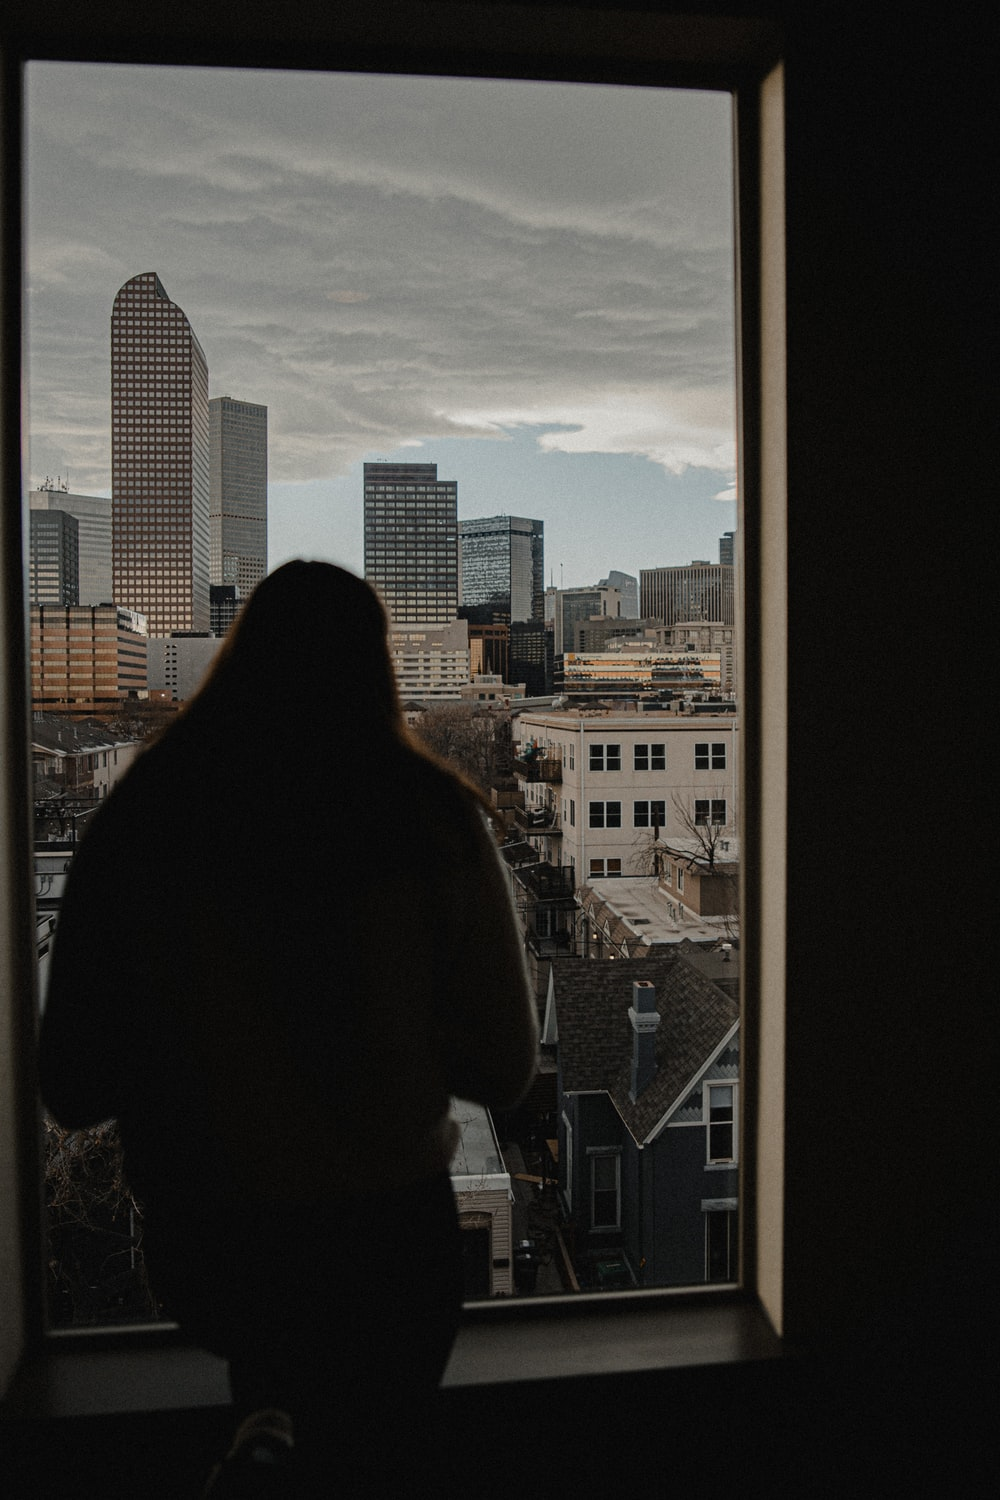 woman in black jacket standing on top of building during daytime